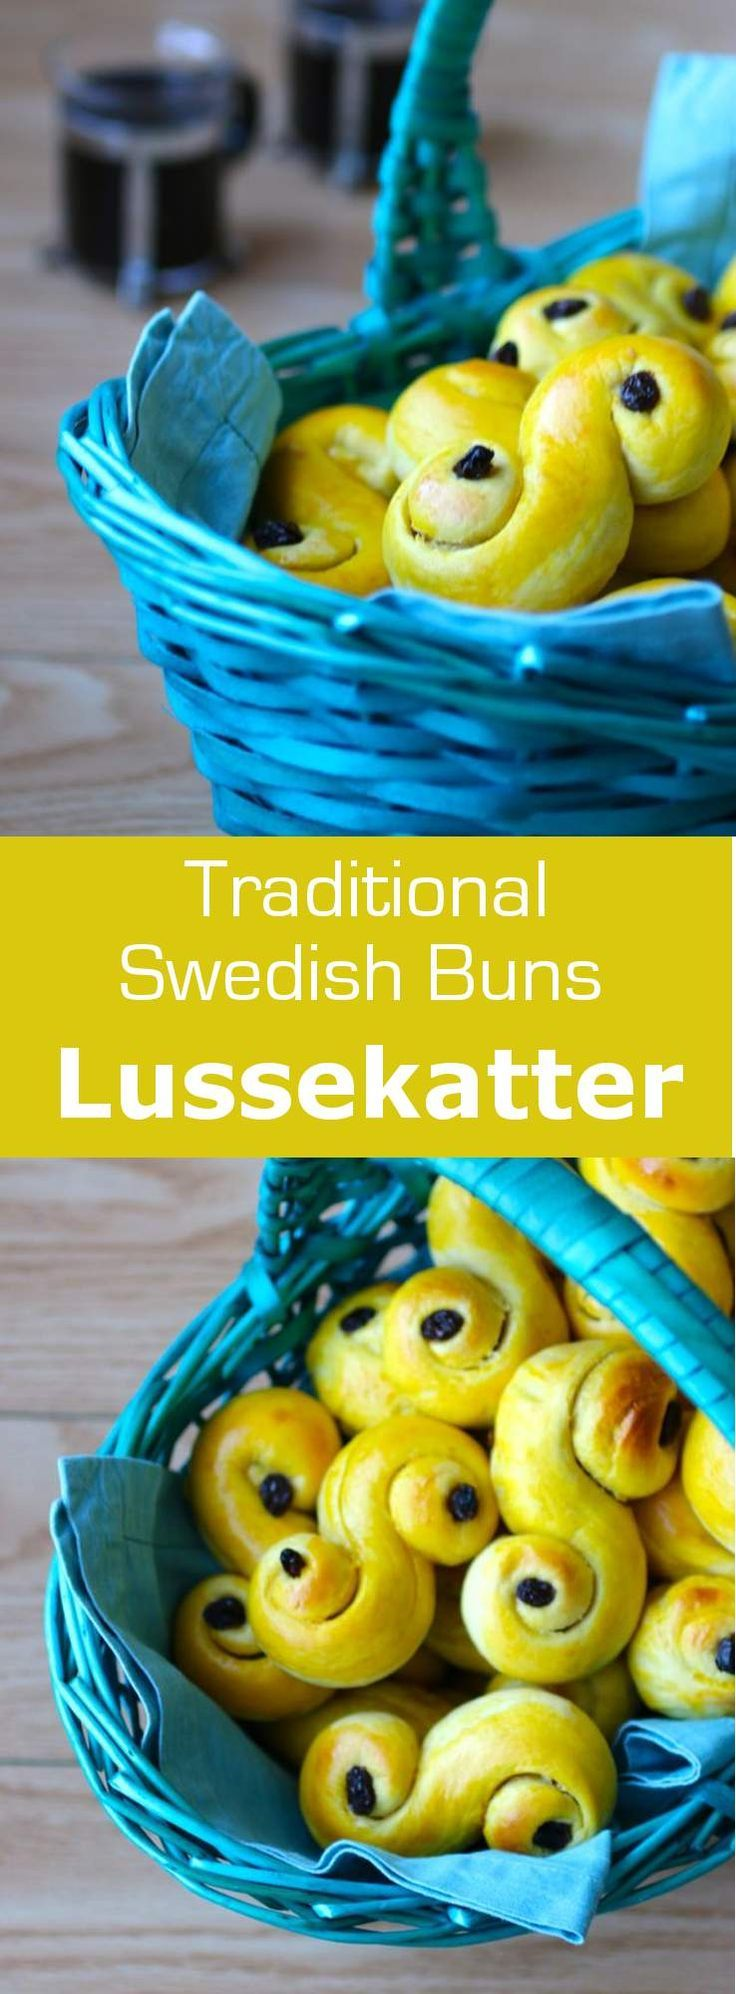 Lussekatter are small saffron buns that are popular in Sweden during Saint Lucy Day's celebrations on December 13th. #dessert #sweden #196flavors